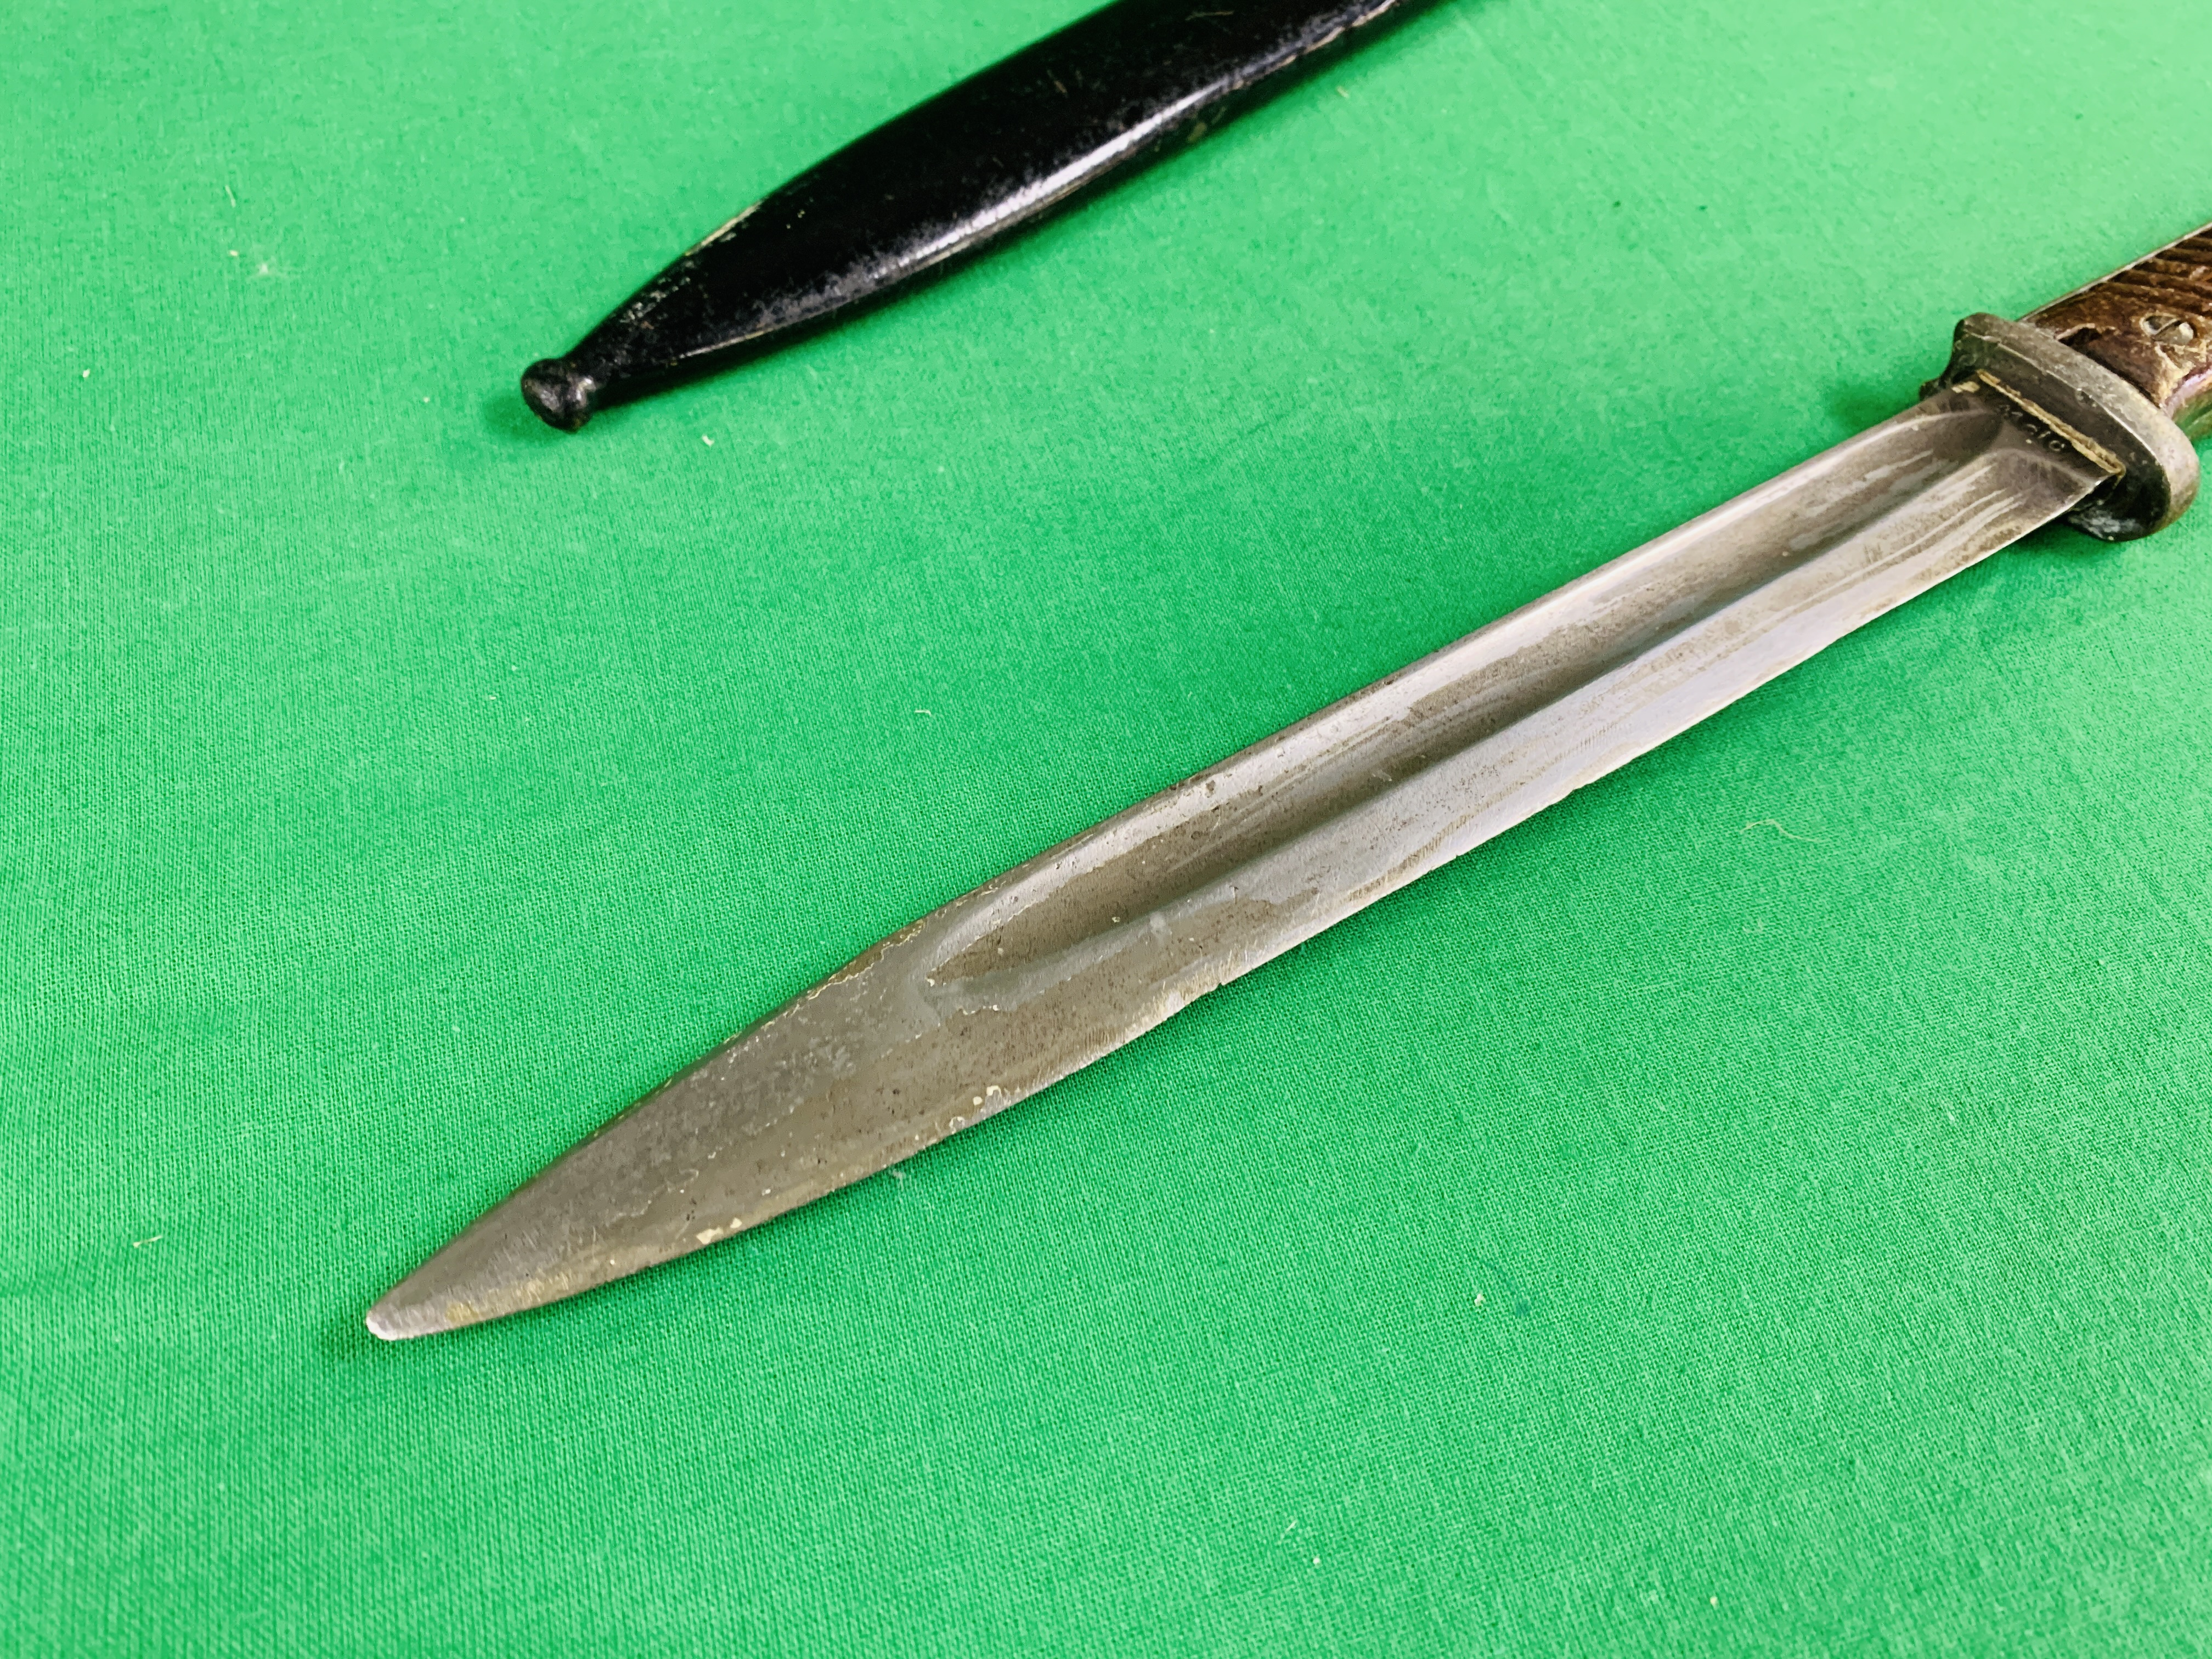 K98 BAYONET ENGRAVED 41 C/C 6363 WITH SCABBARD. - Image 6 of 10